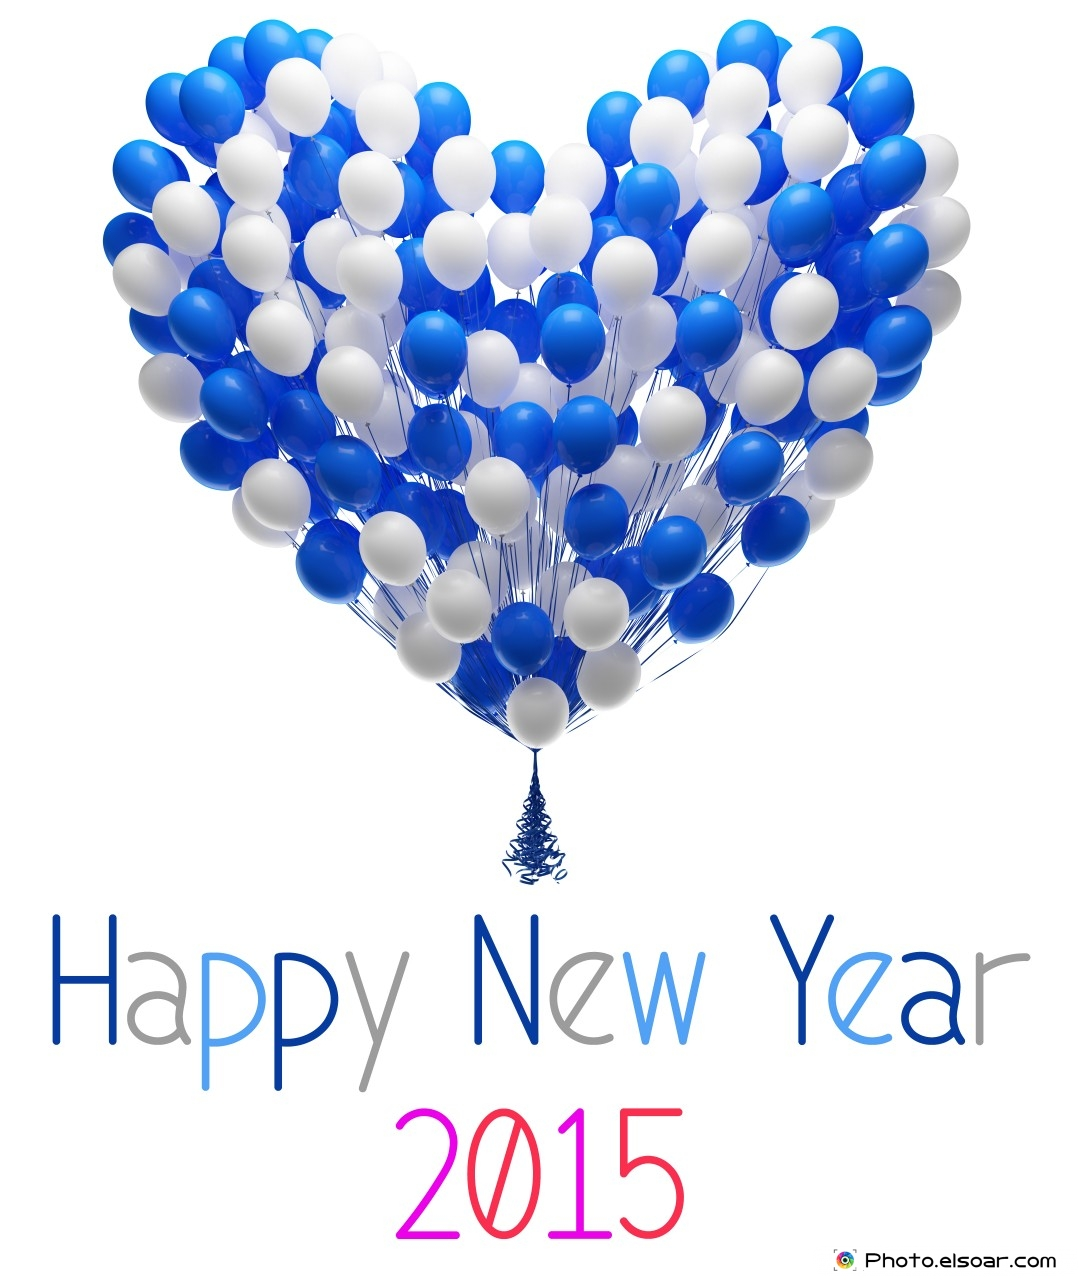 Top 10 Wallpapers For Happy New Year 2015 With Colorful Balloons 1080x1280